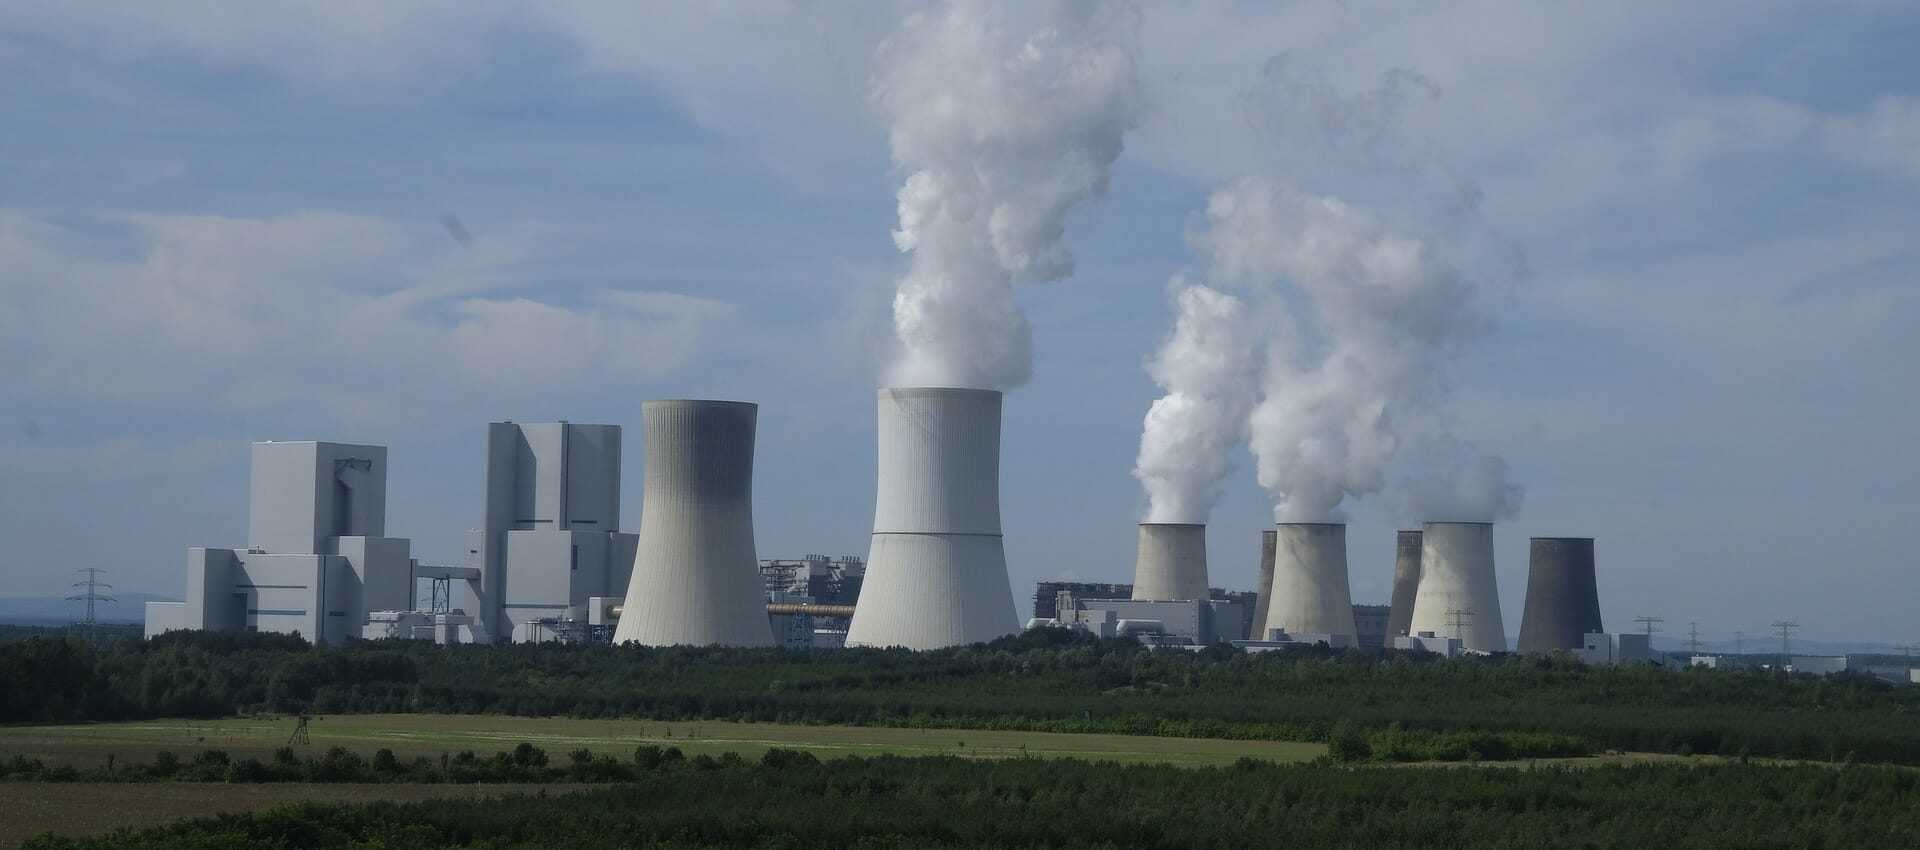 Nuclear Energy in the U.S.: Recent Plant Closures and Policy ...